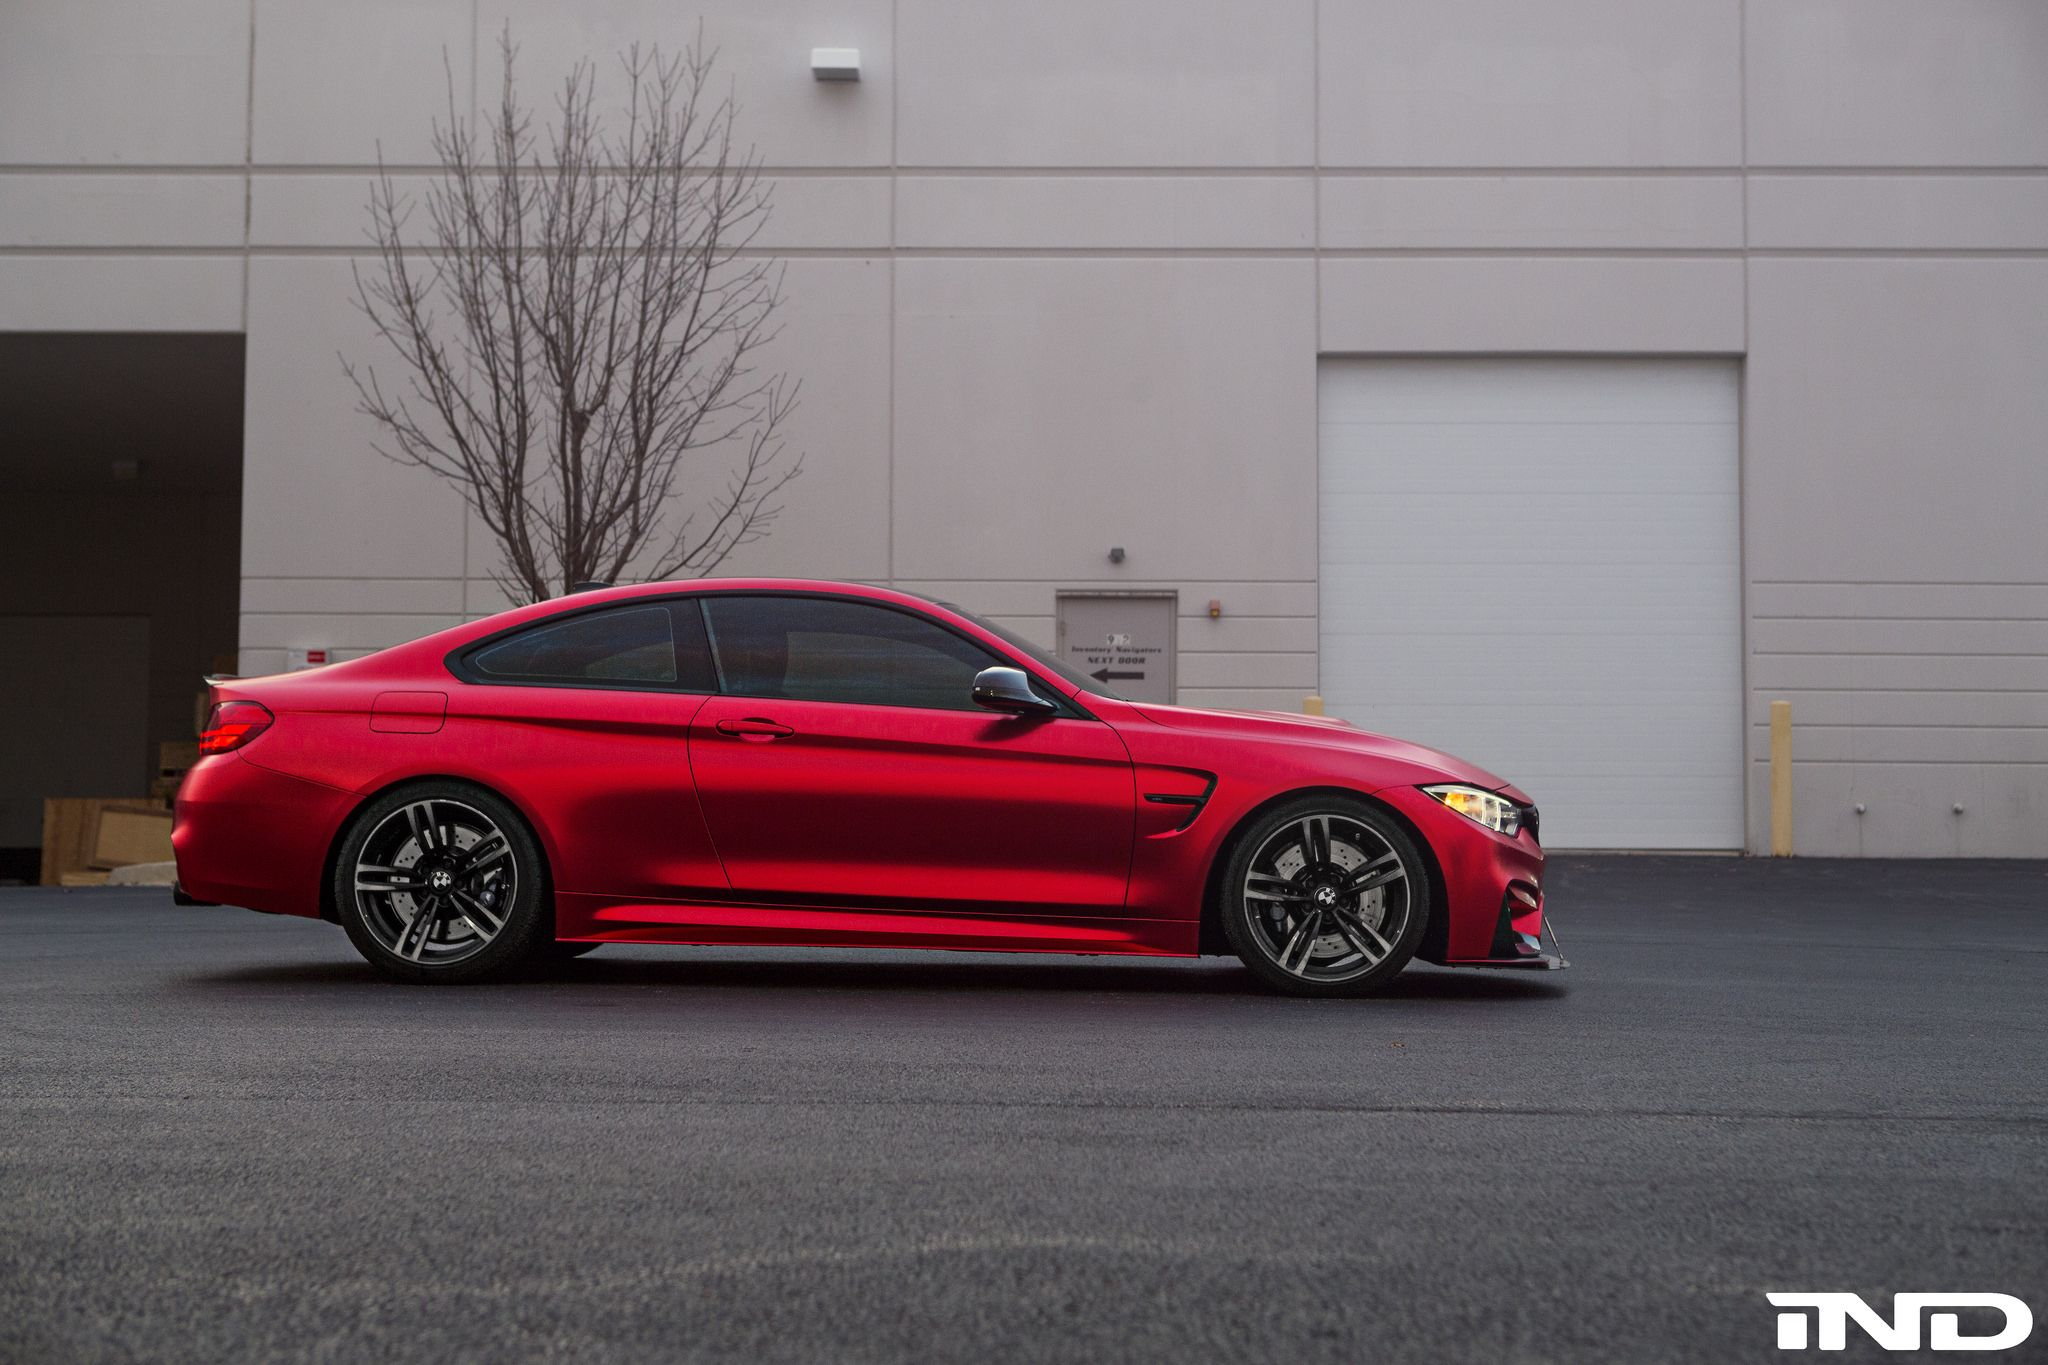 Photoshoot This Matte Red Bmw M4 Is A Thing Of Beauty Bmw M4